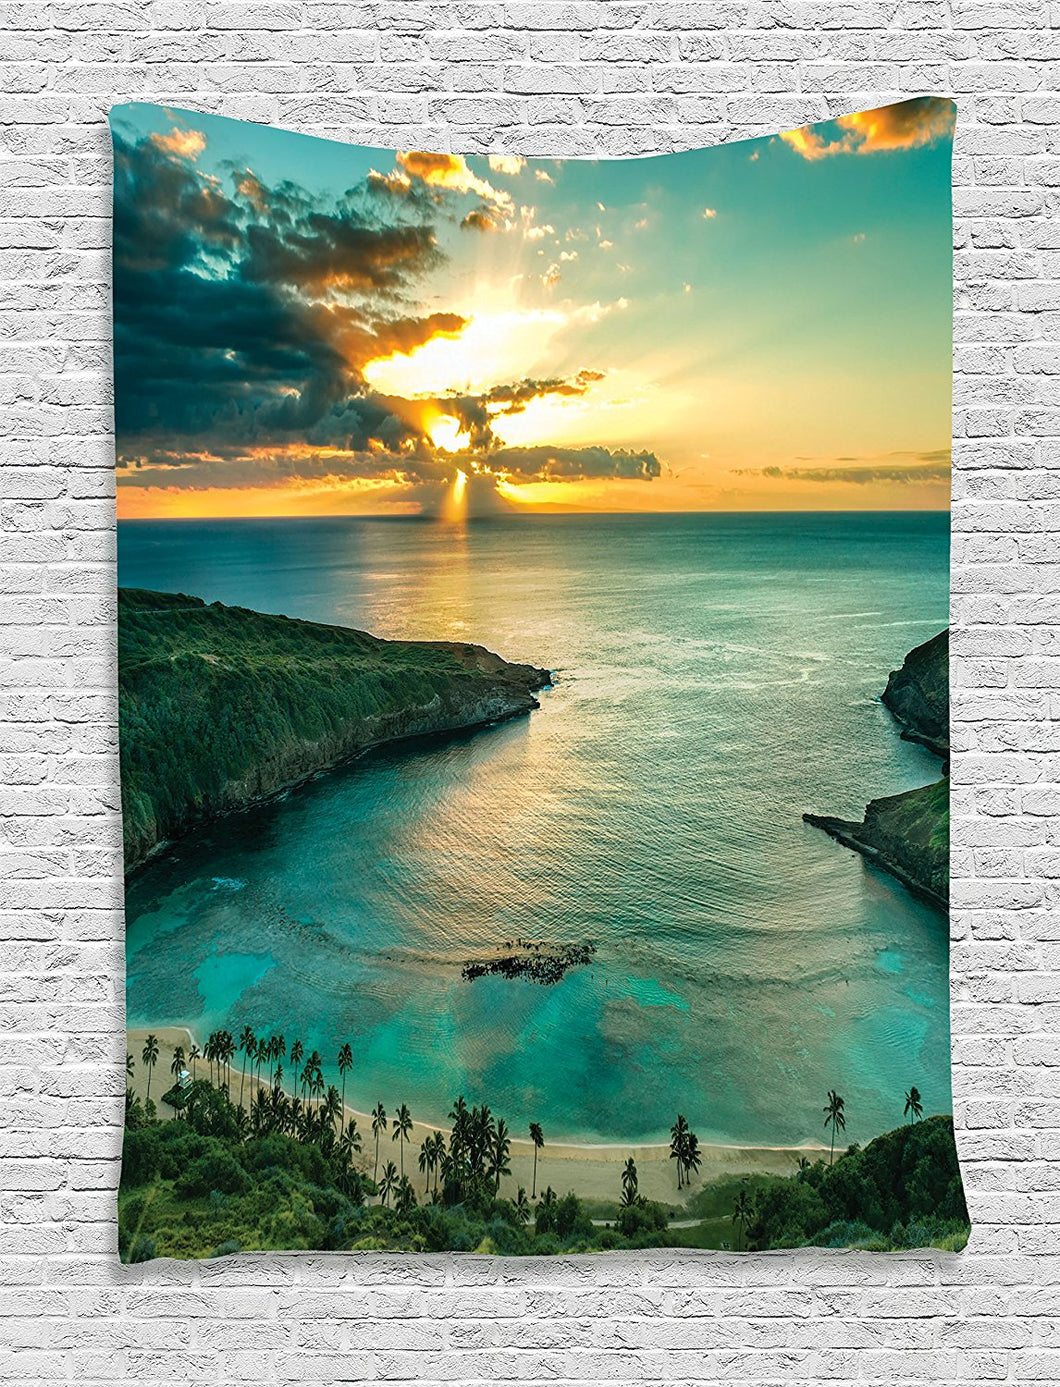 Ambesonne Beach Tapestry Sunset Decor by, Sunrise over Hanauma Bay on Oahu Hawaii Sunbeams Through Dark Clouds Shoreline Image, Bedroom Living Room Dorm Wall Hanging, 60W x 80L Inches, Aqua Orange